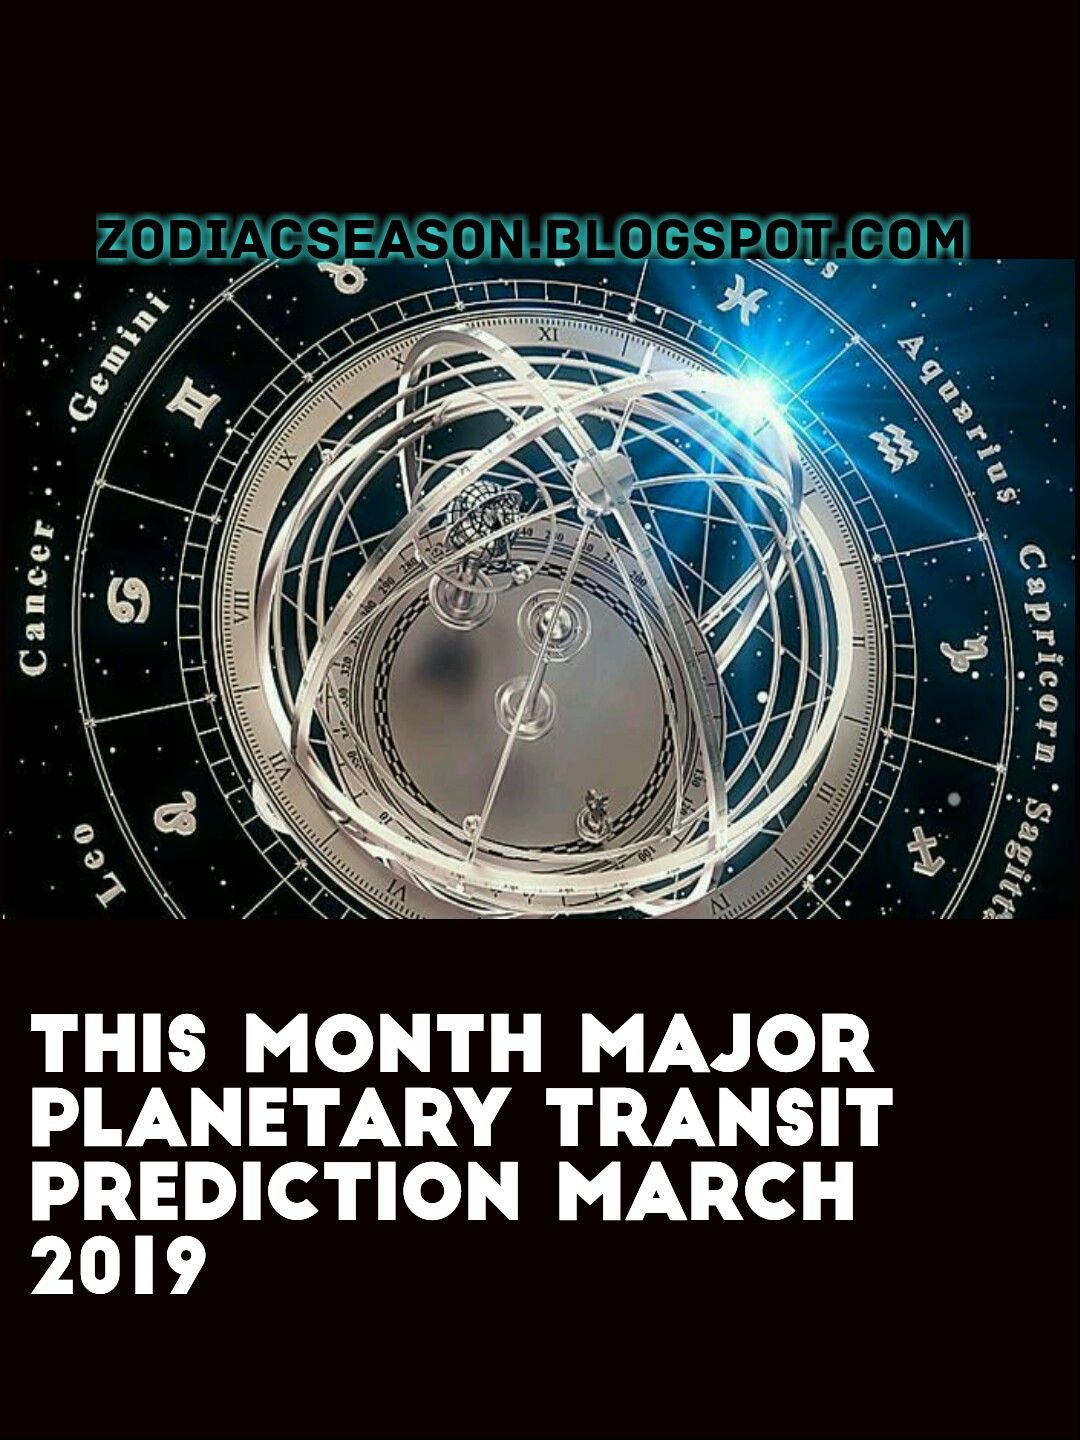 This month major planetary transit prediction March 2019